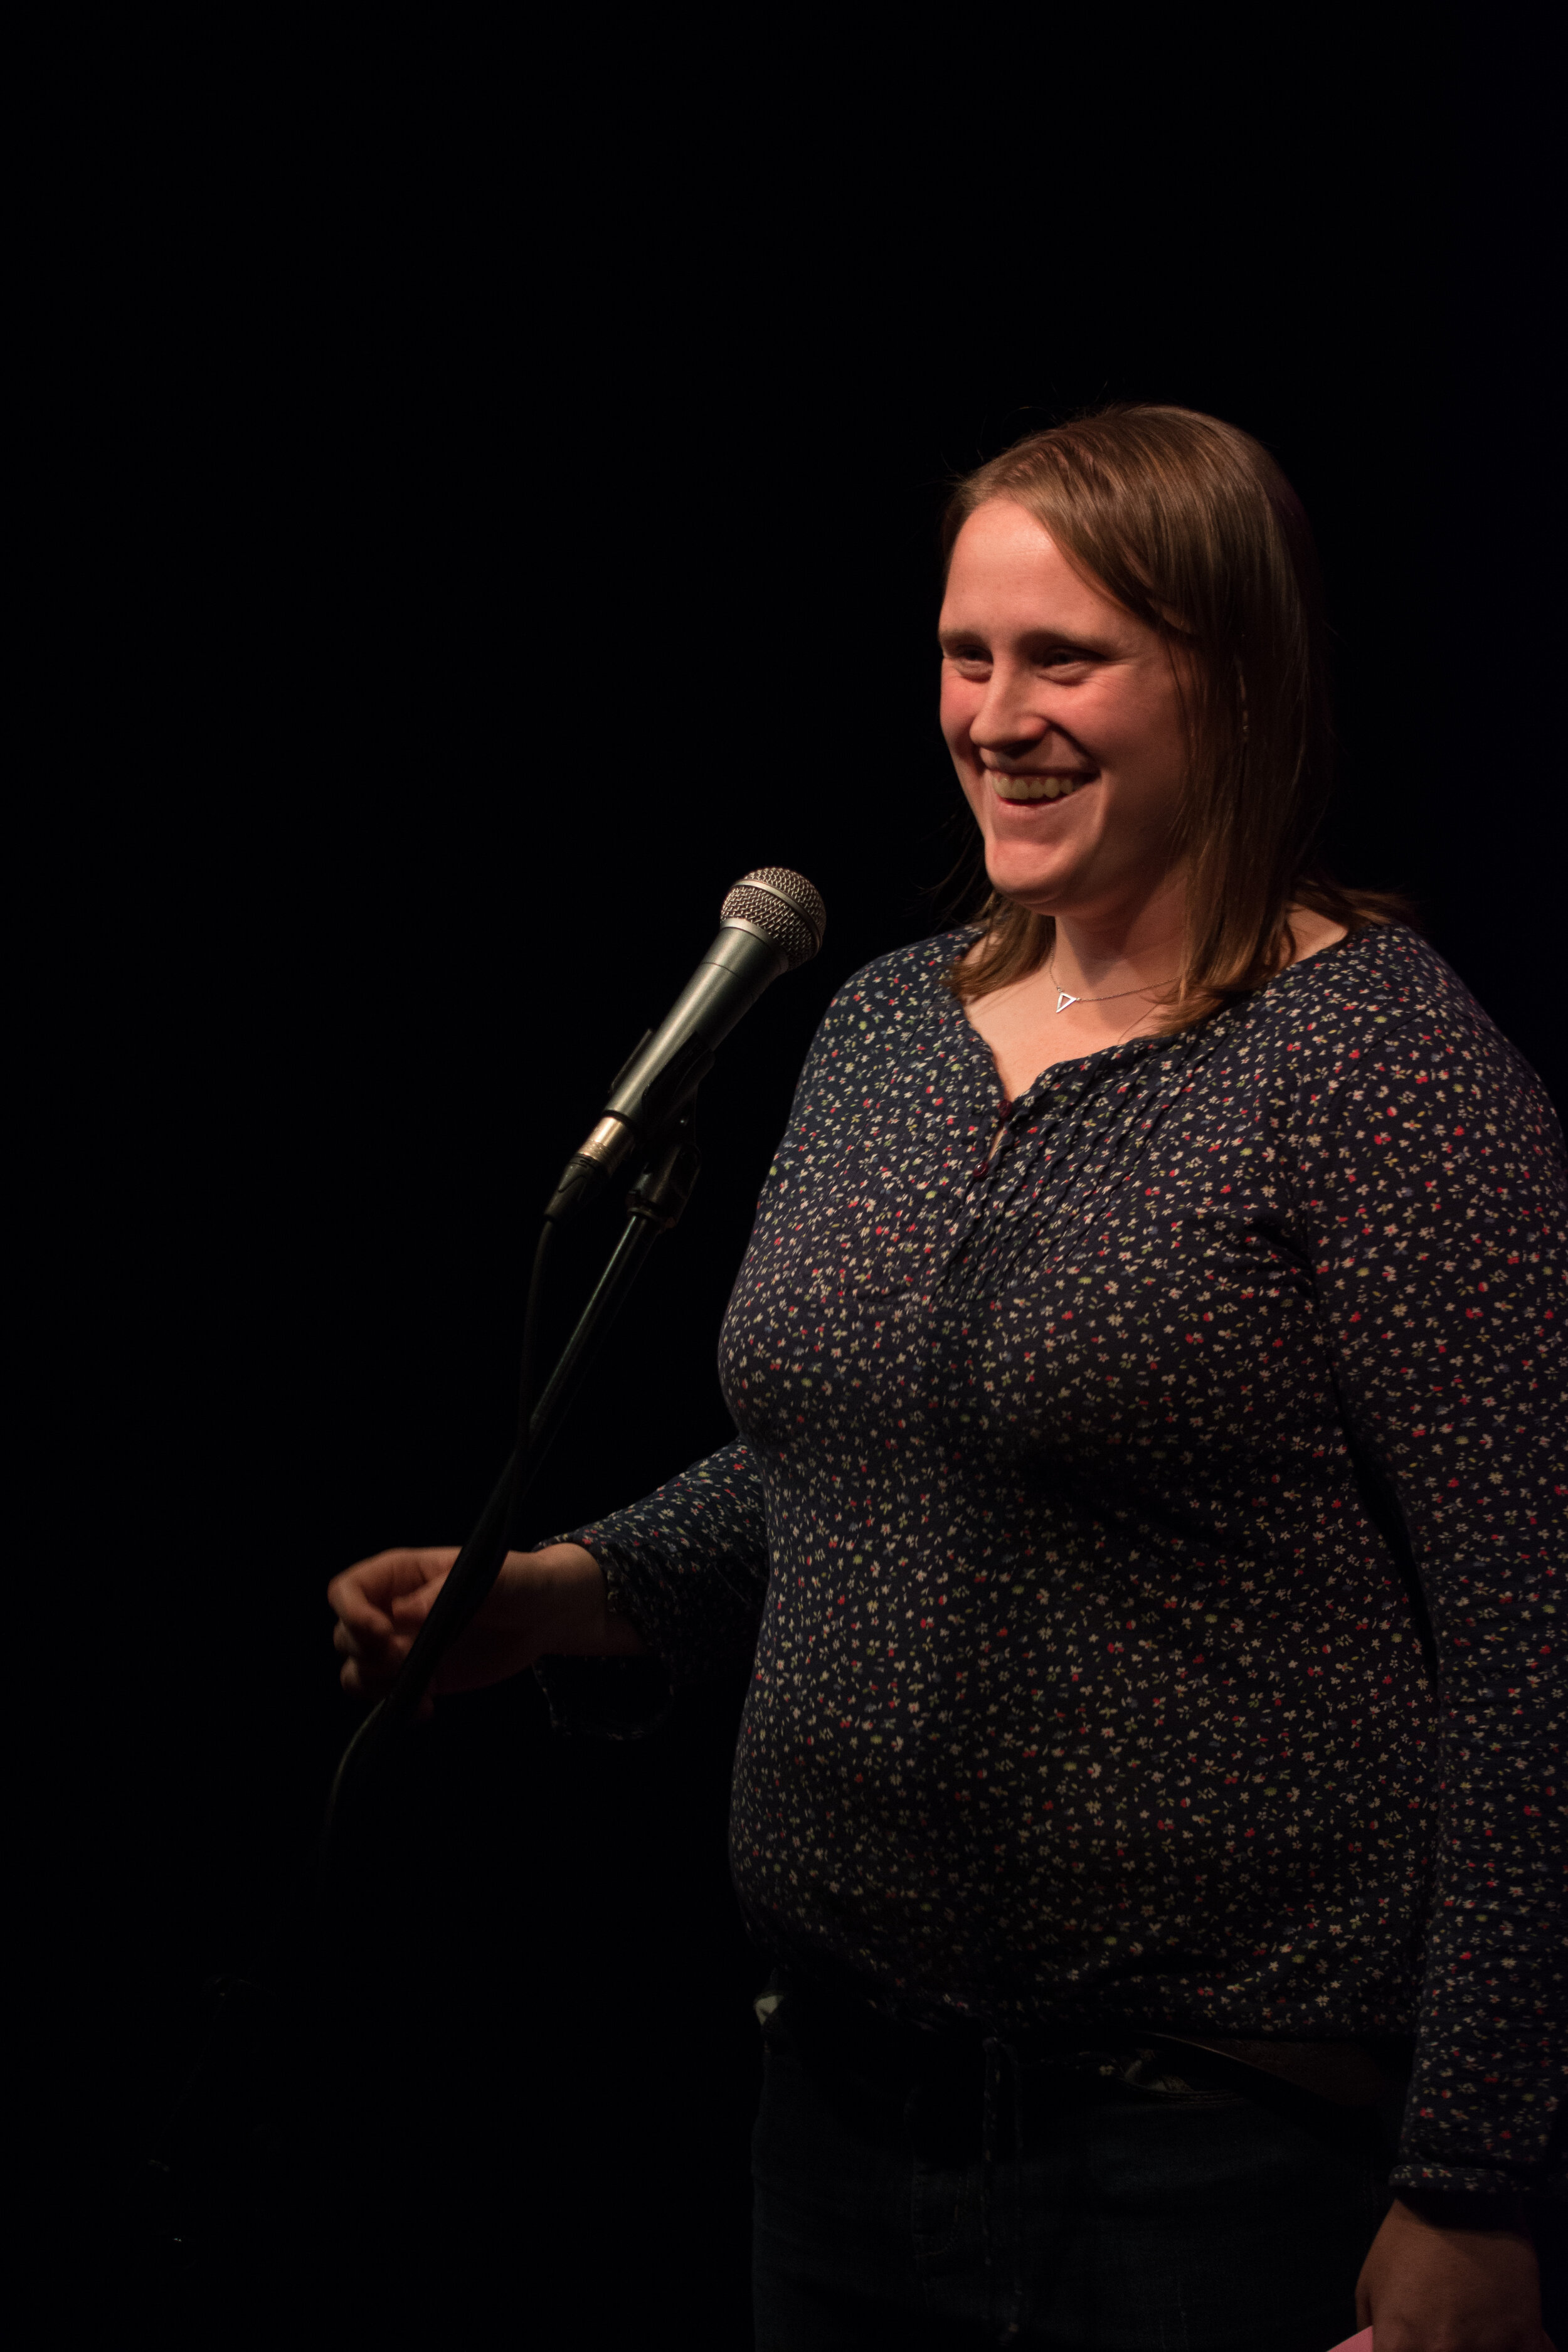 Vicky Forster shares her story with the Story Collider audience at the Burdock in Toronto, ON in October 2018. Photo by Stacey McDonald.